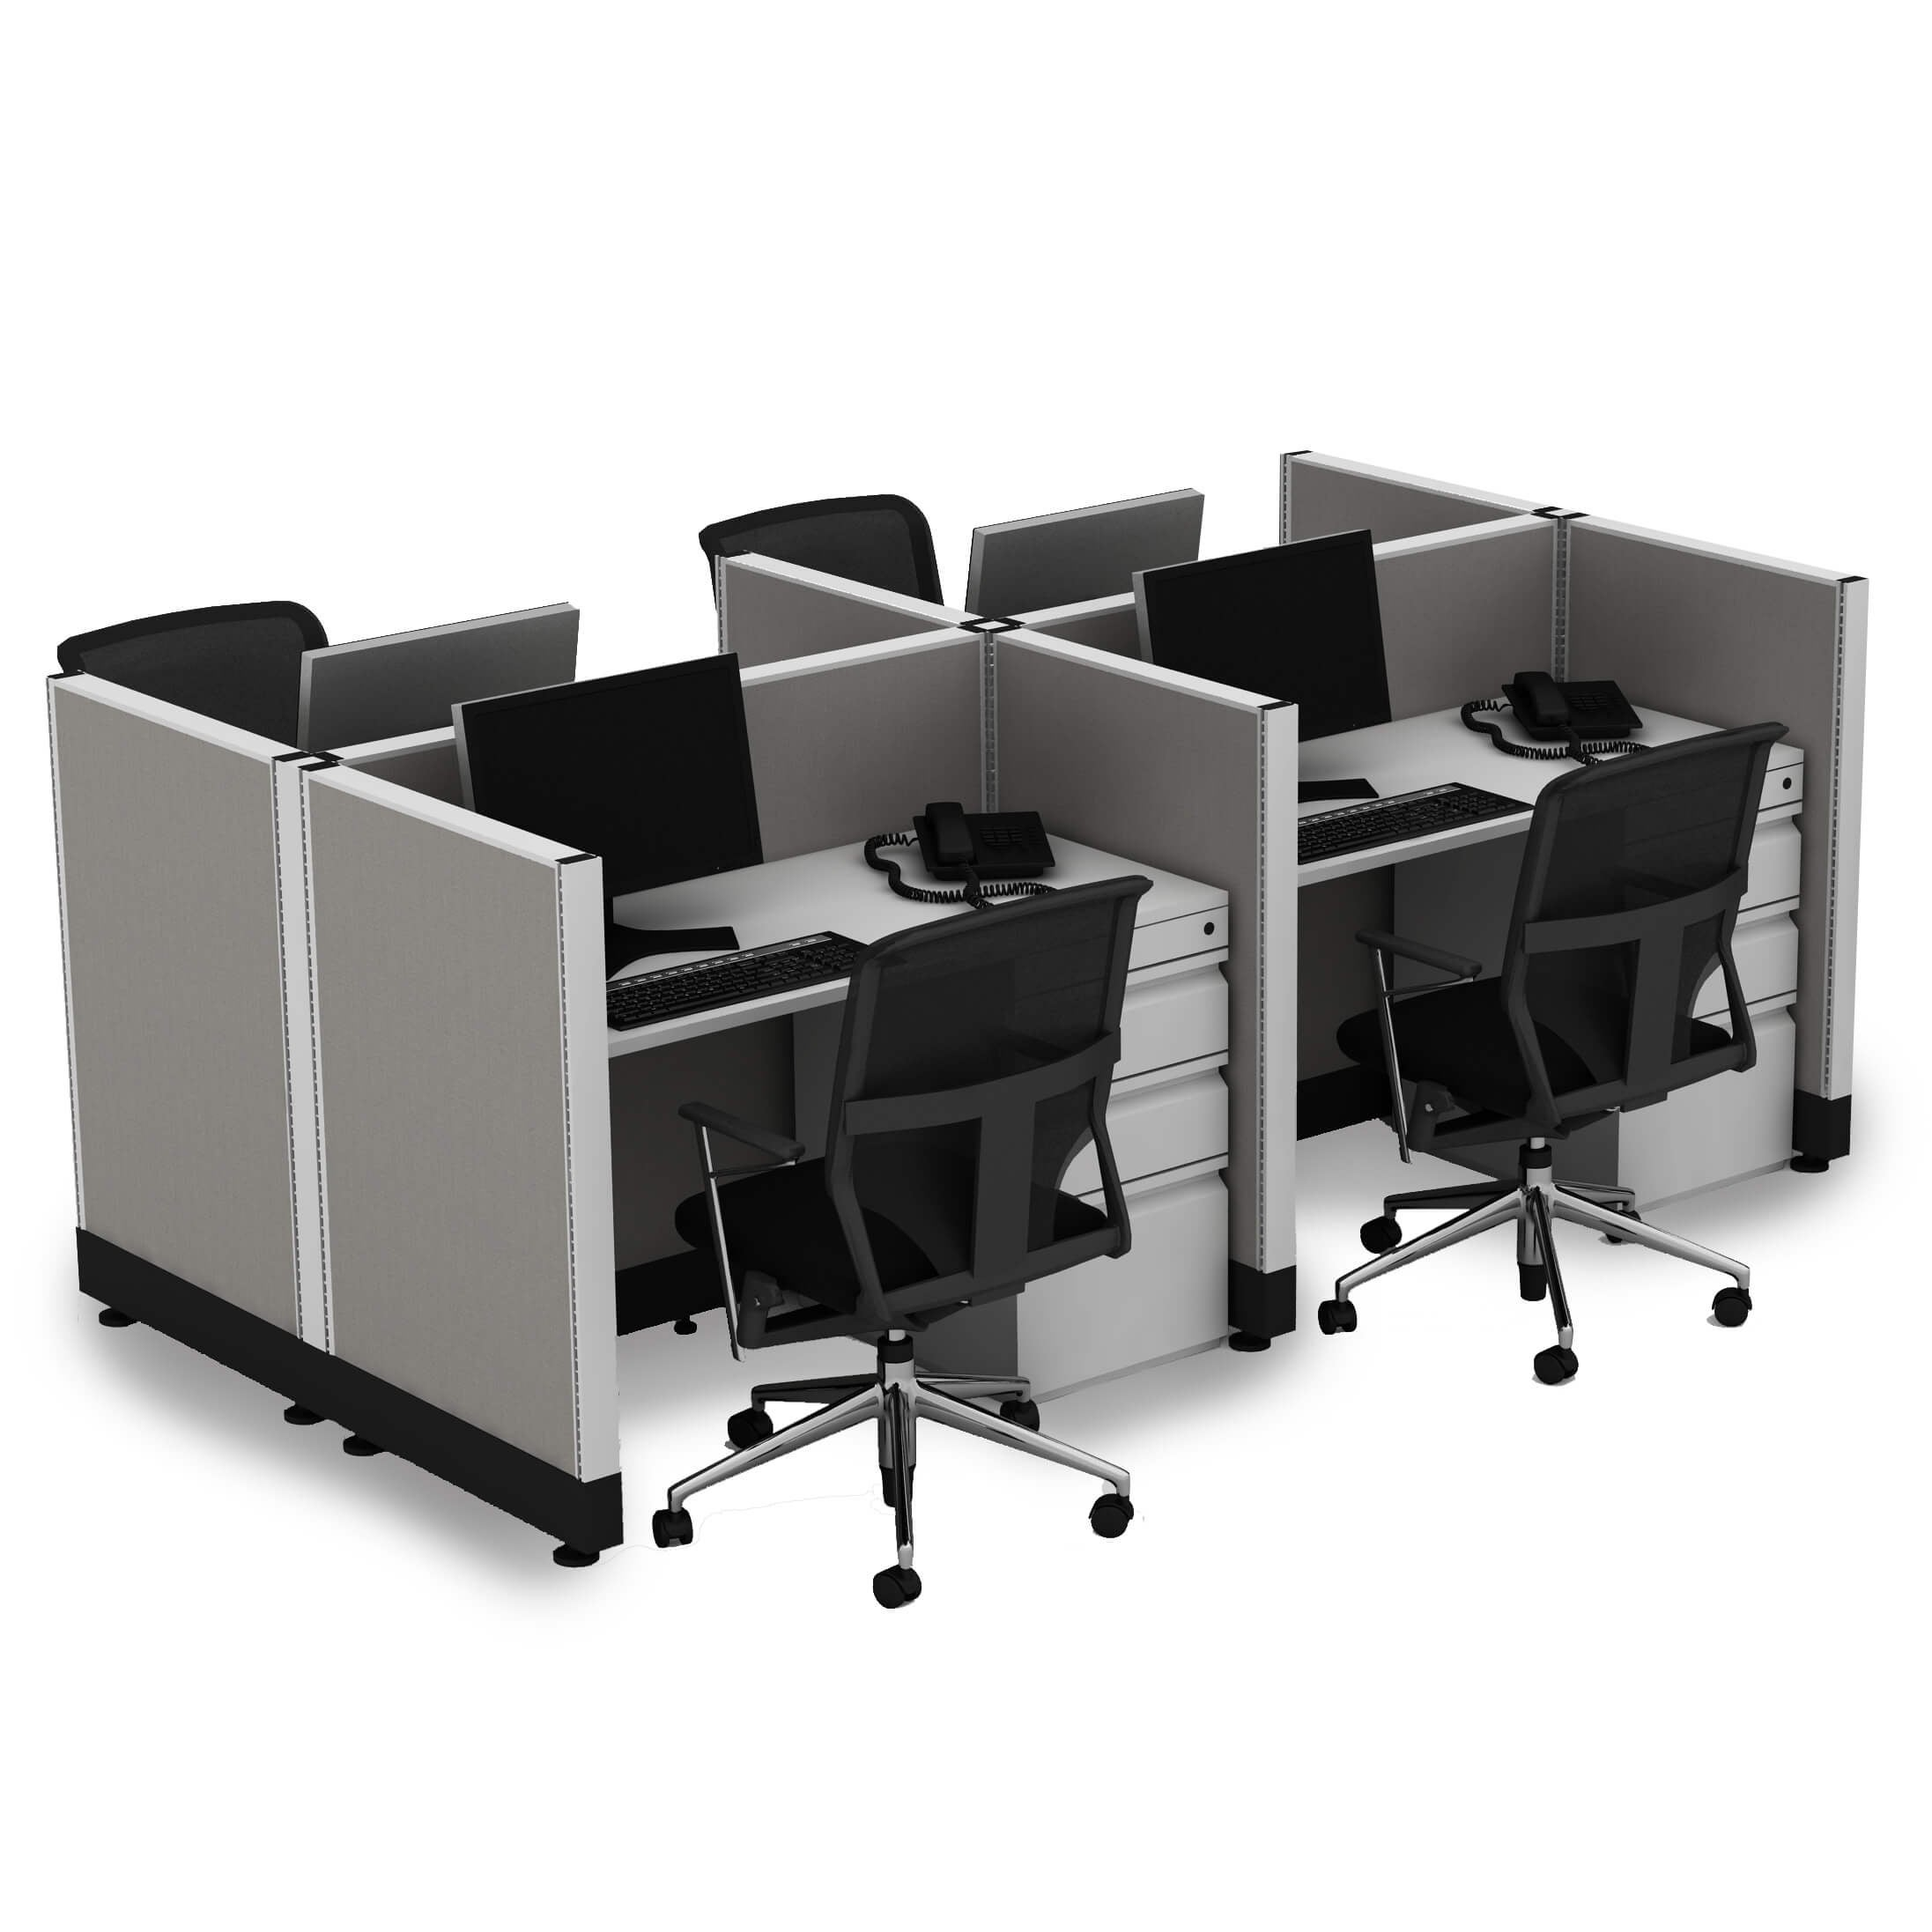 Small Cubicles 39H 4pack Cluster Powered (3x4 - Espresso Desk Silver Paint - Assembly Required)